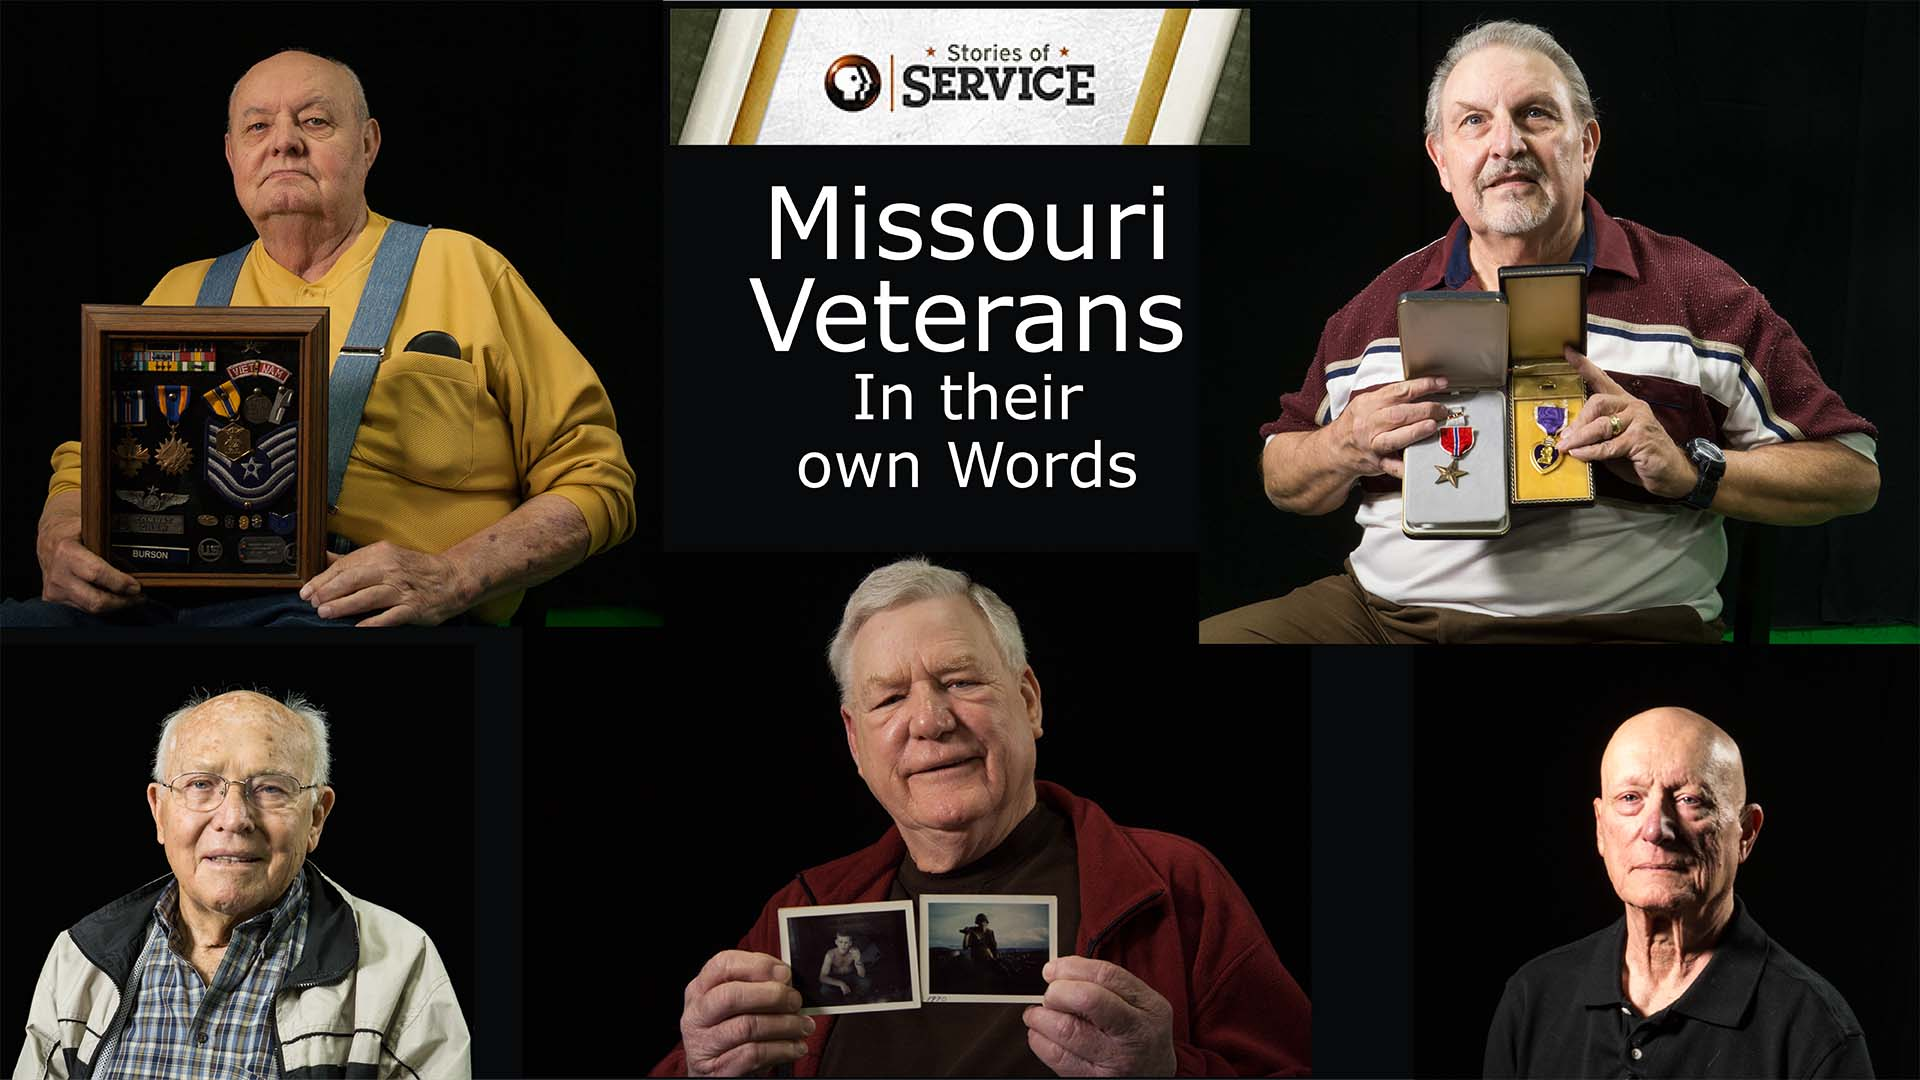 Veterans from Missouri Share their Experiences